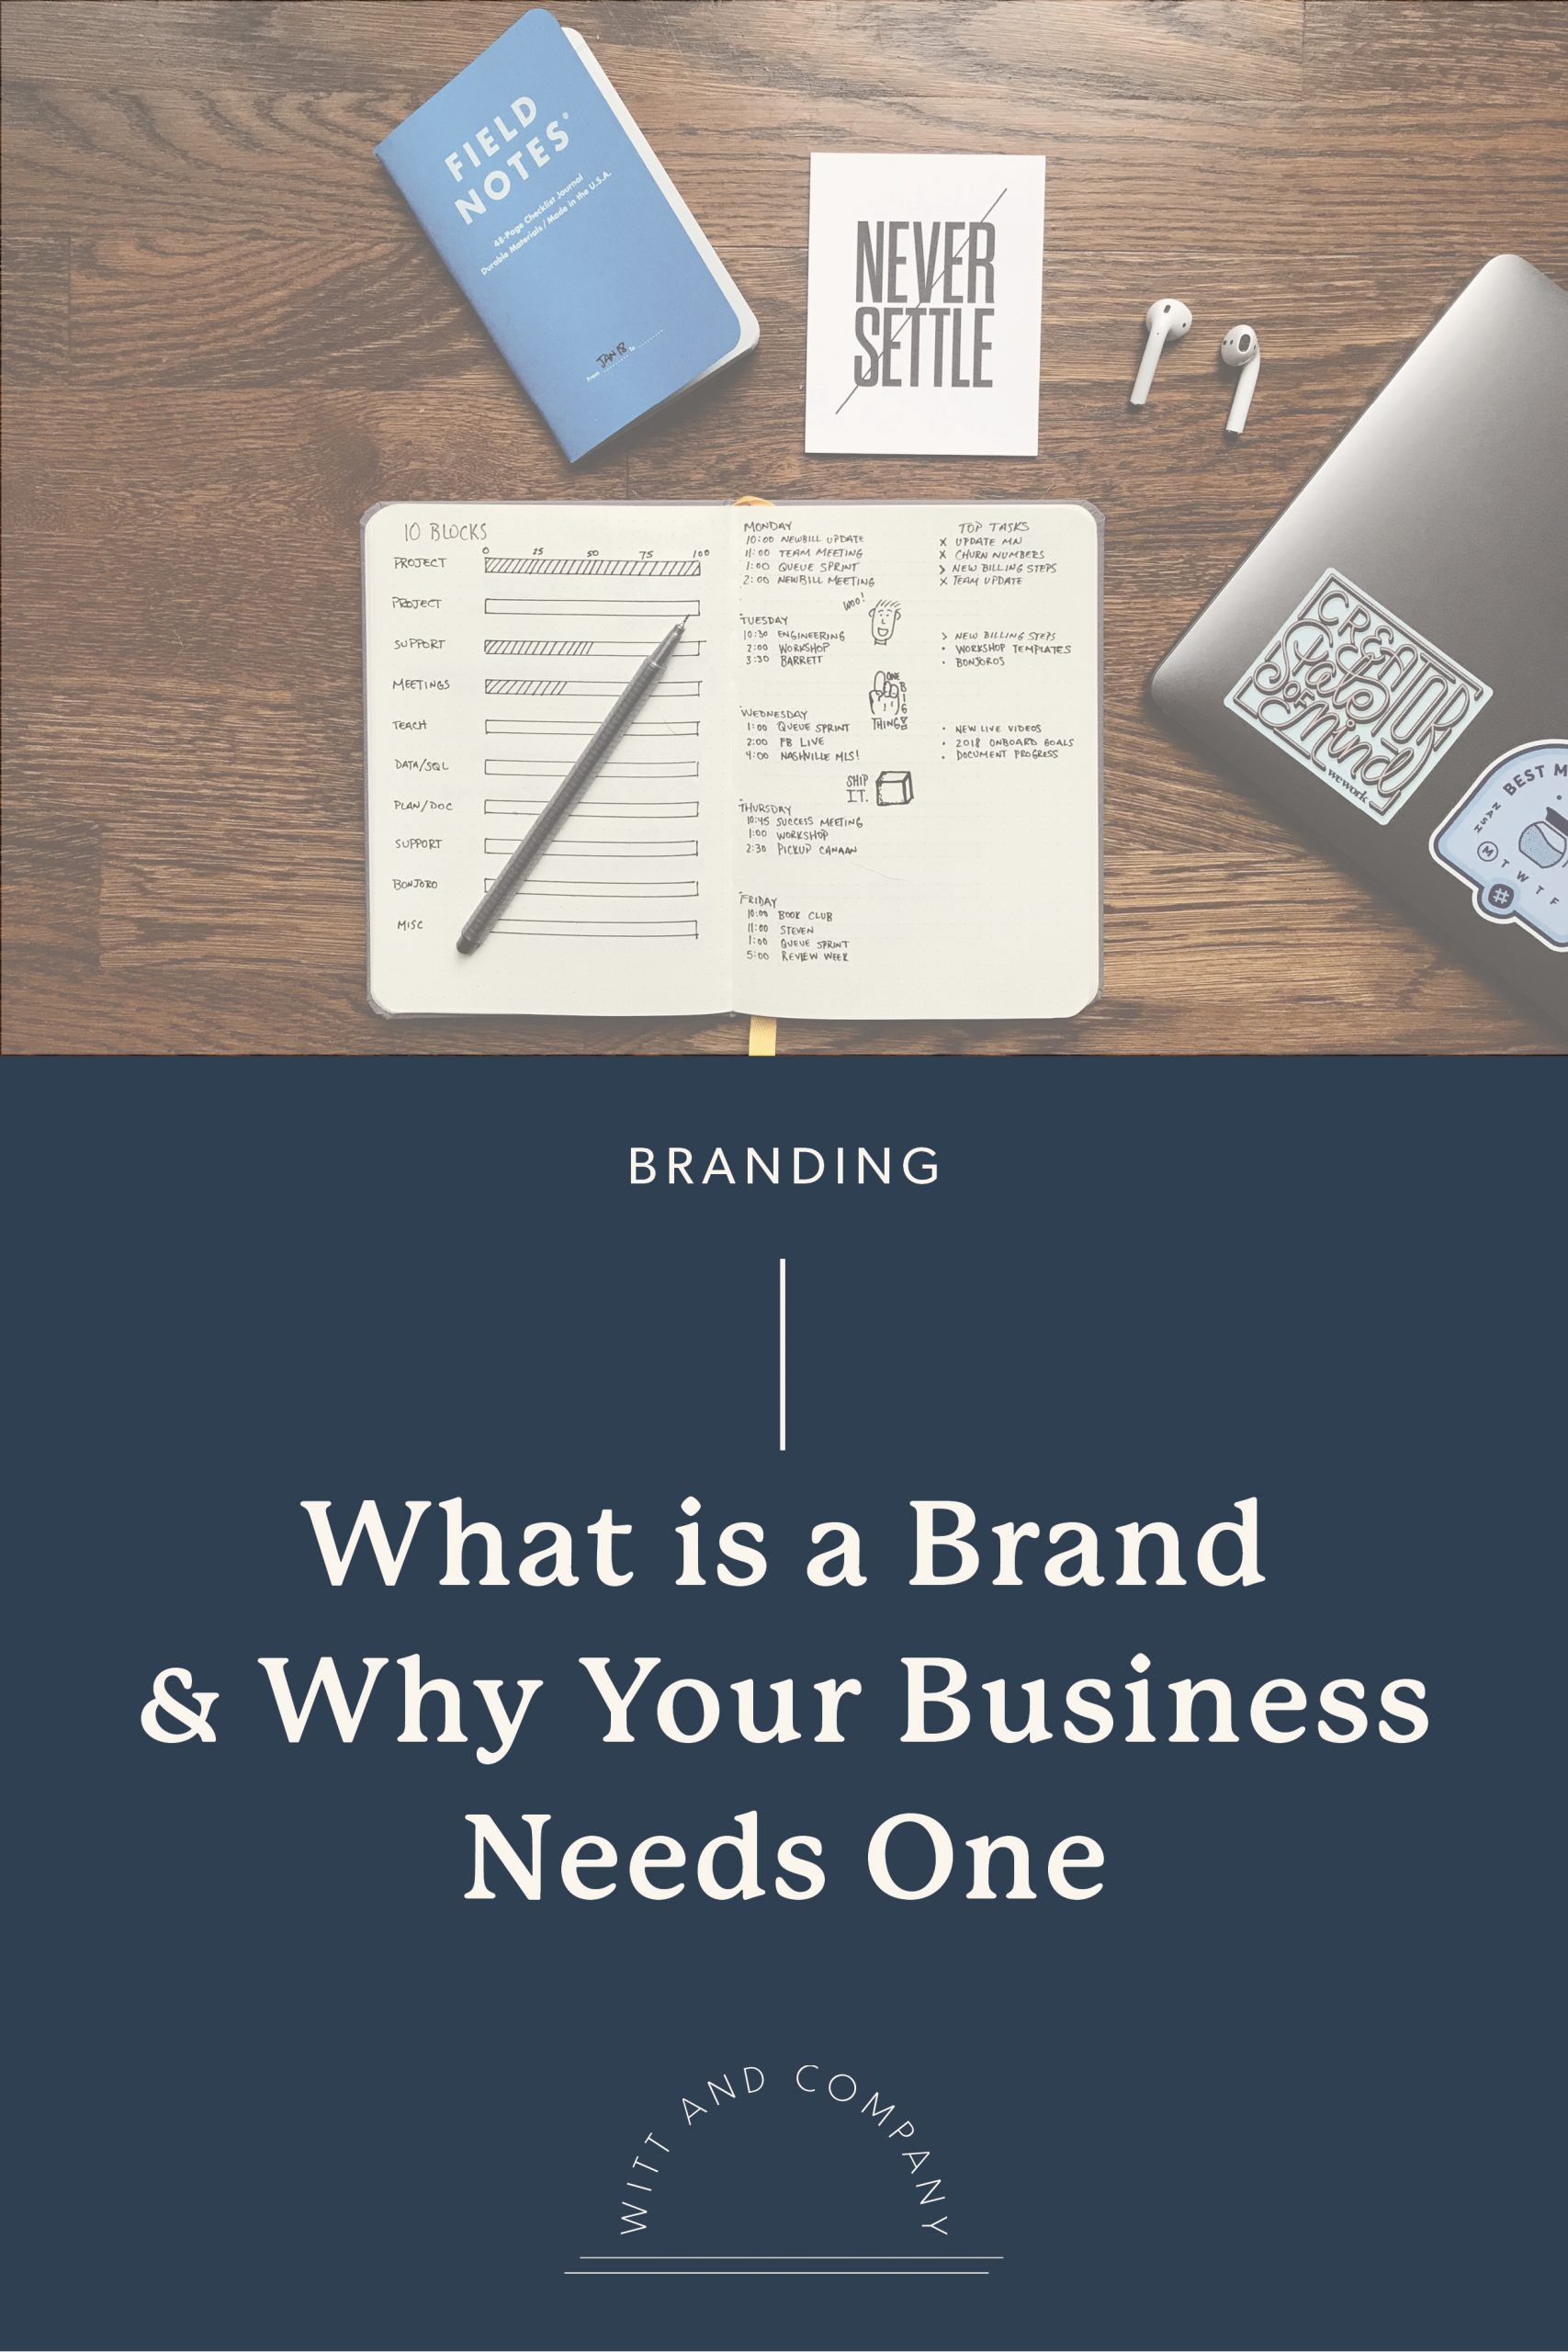 What is a Brand & Why Your Business Needs One